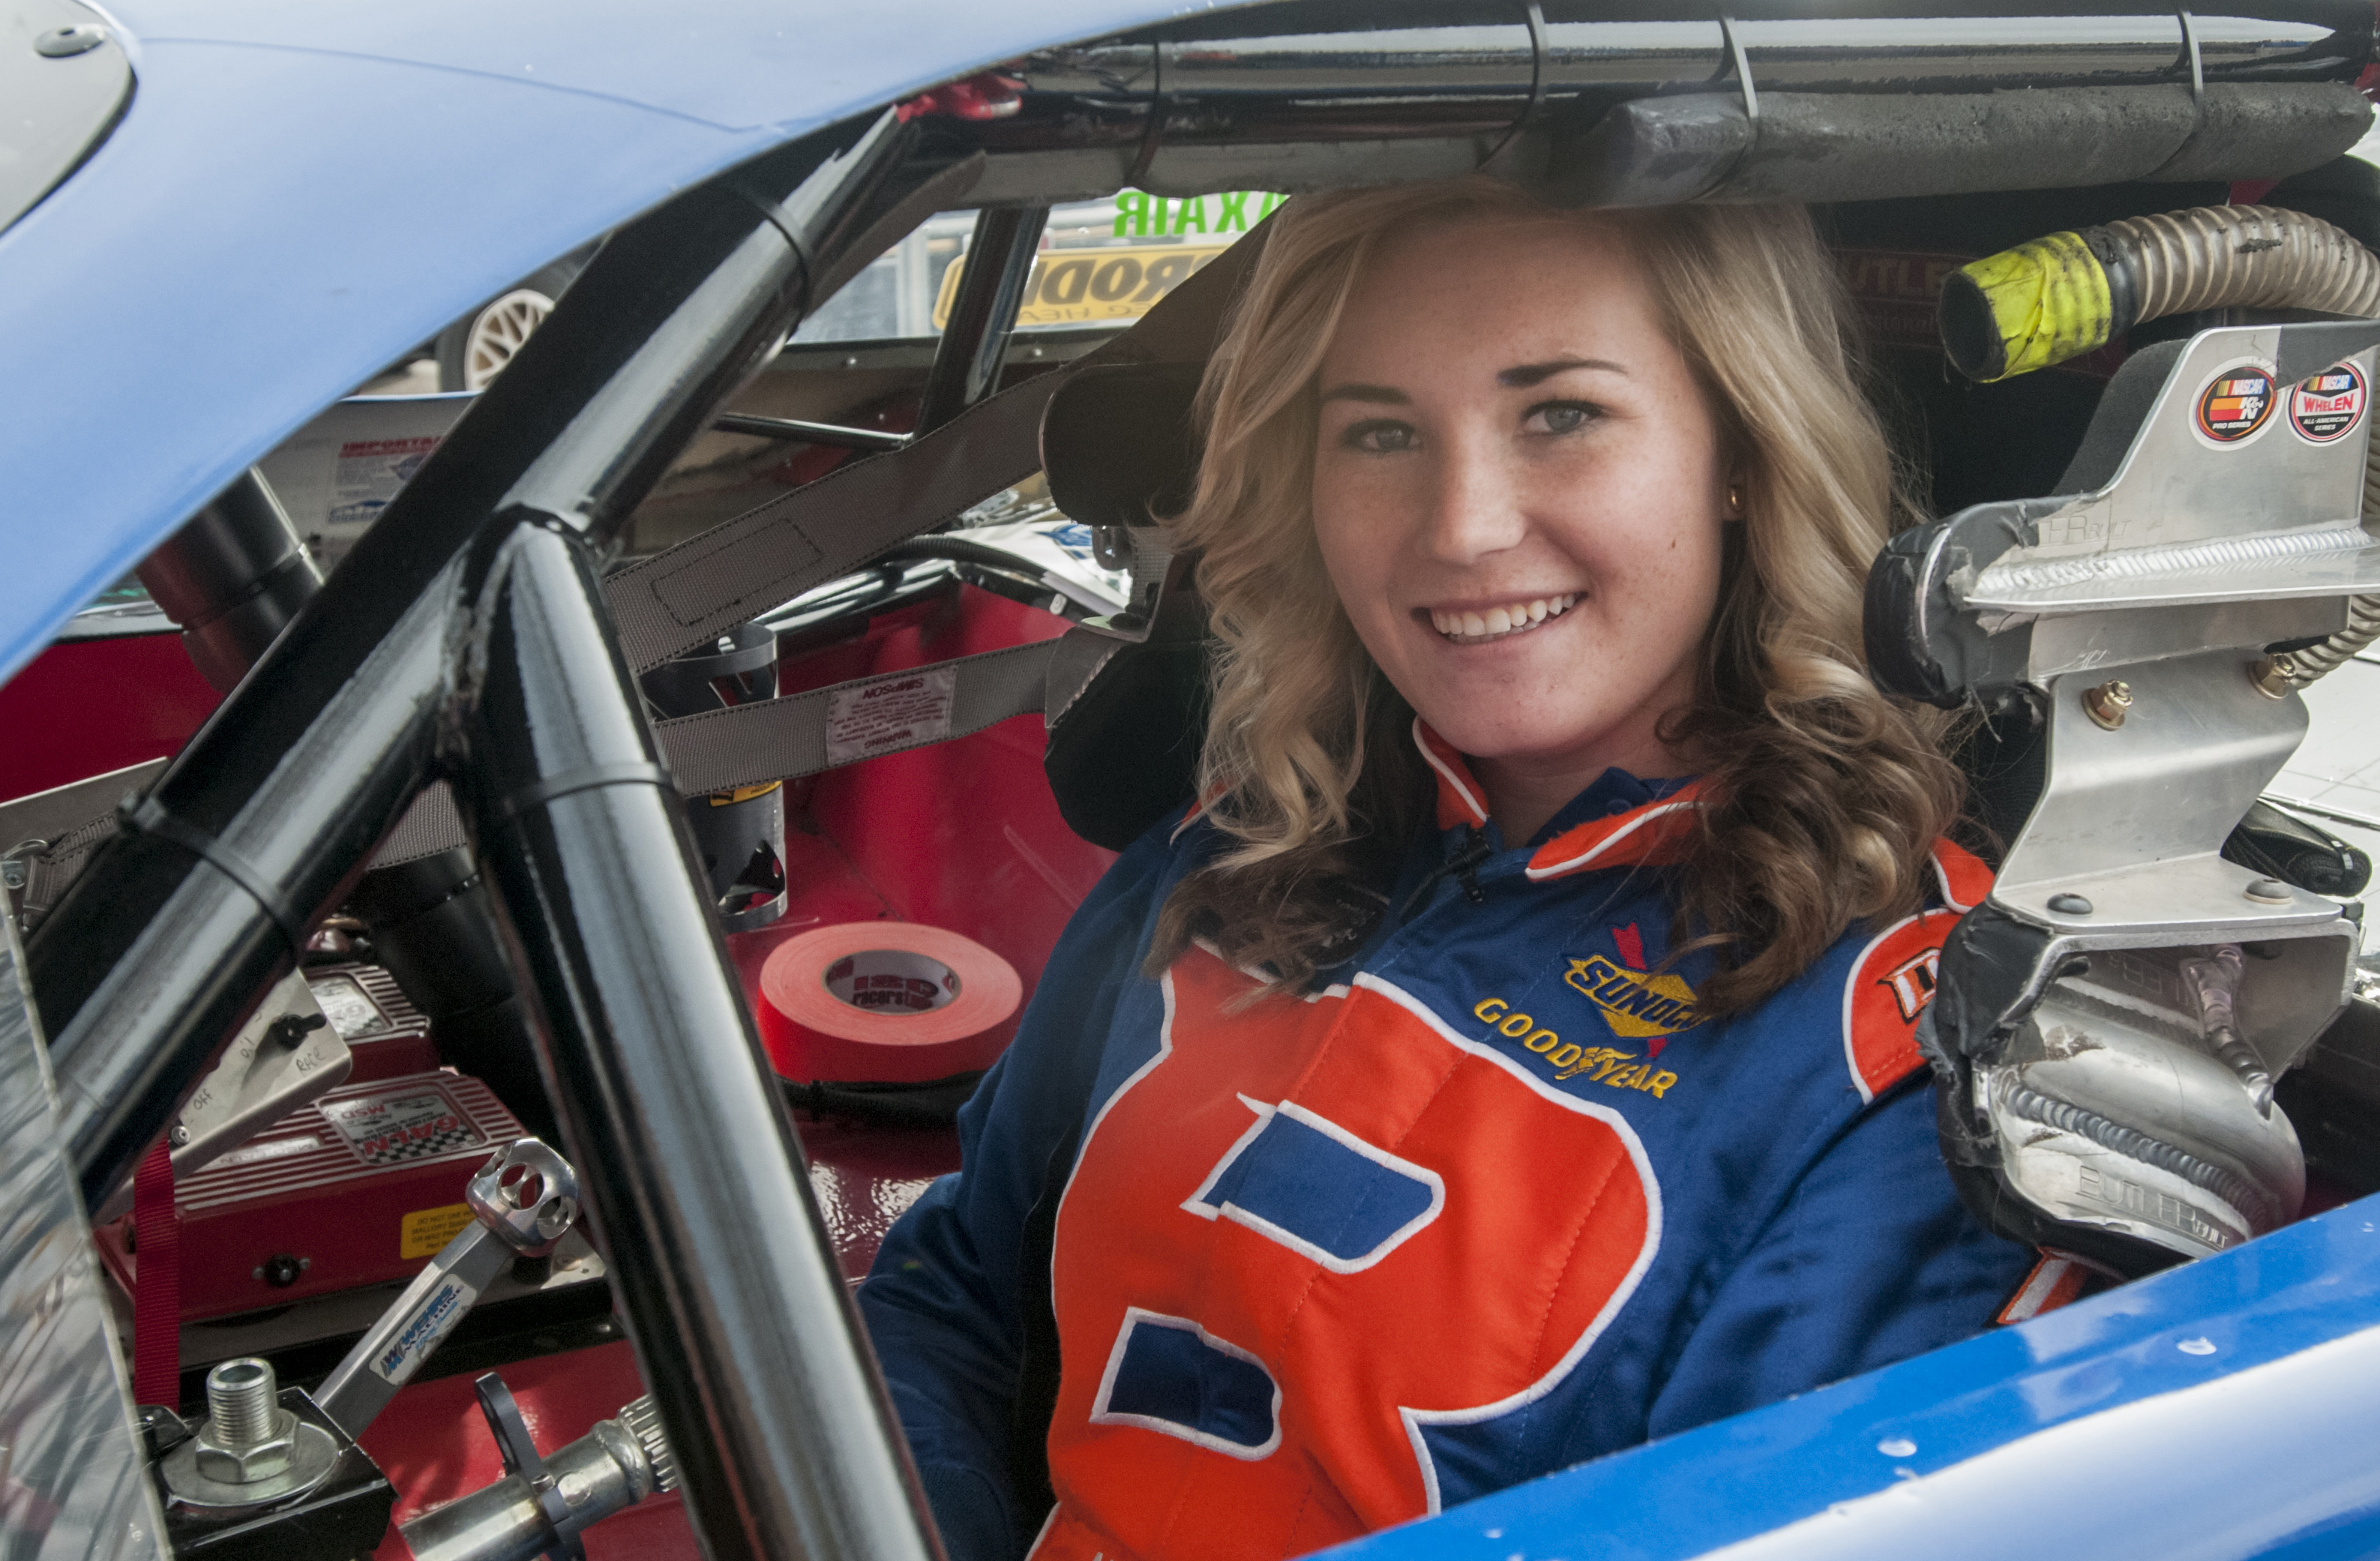 Hannah Newhouse in racecar image